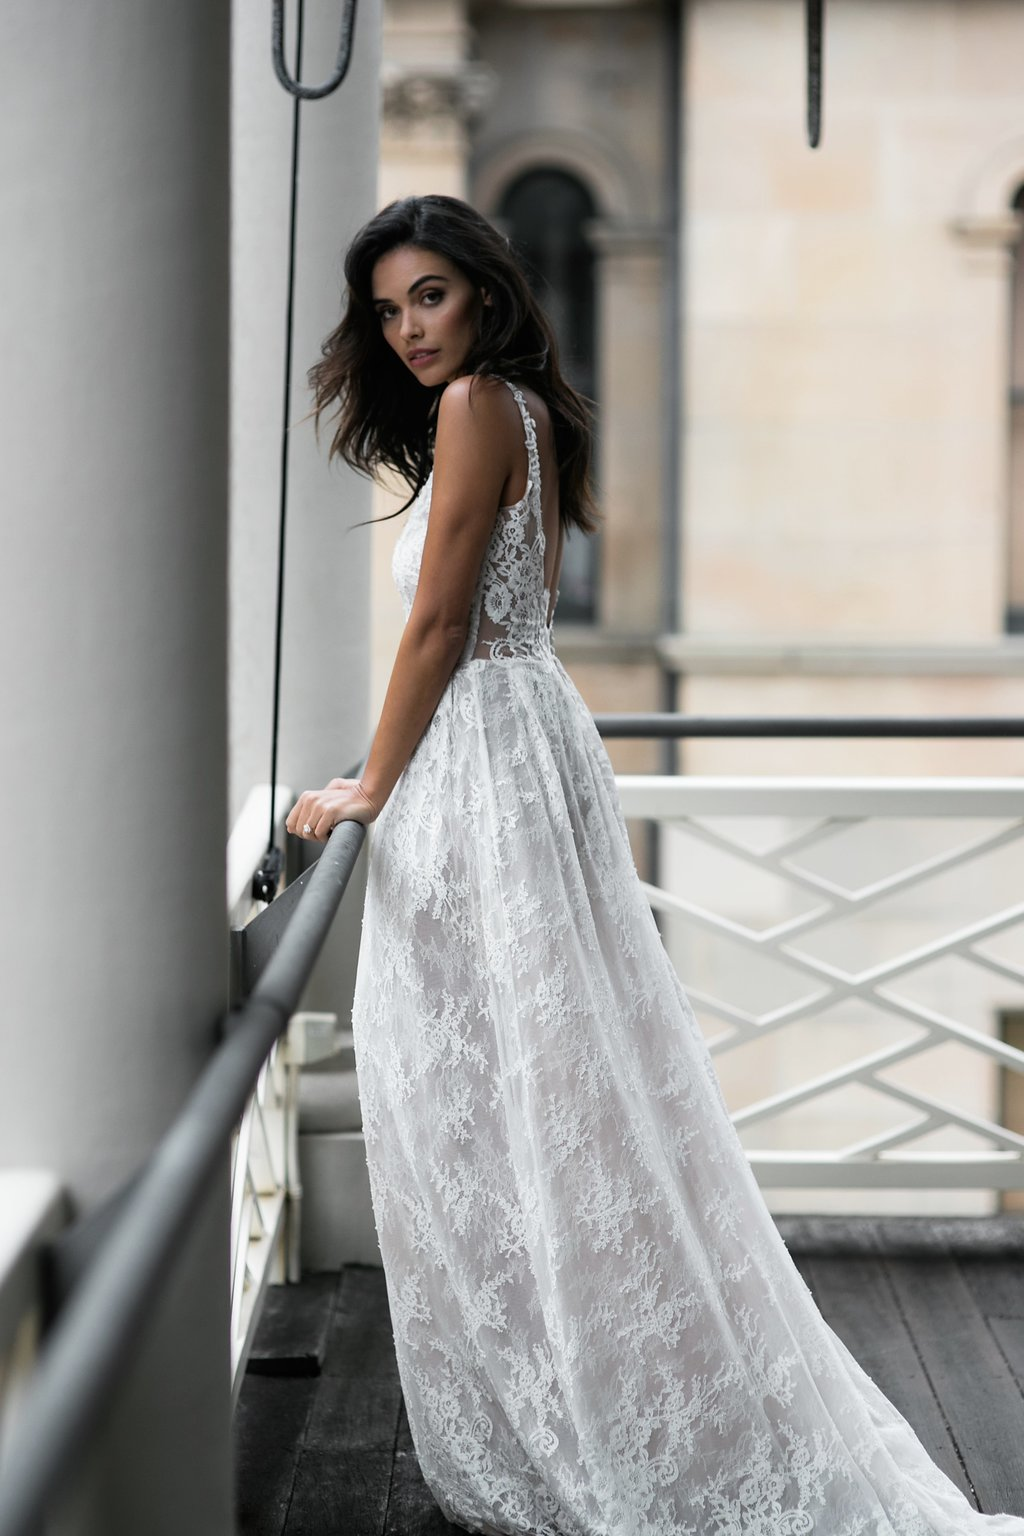 Alice Wedding Dress by Moira Hughes Couture | Featured on Love Find Co.